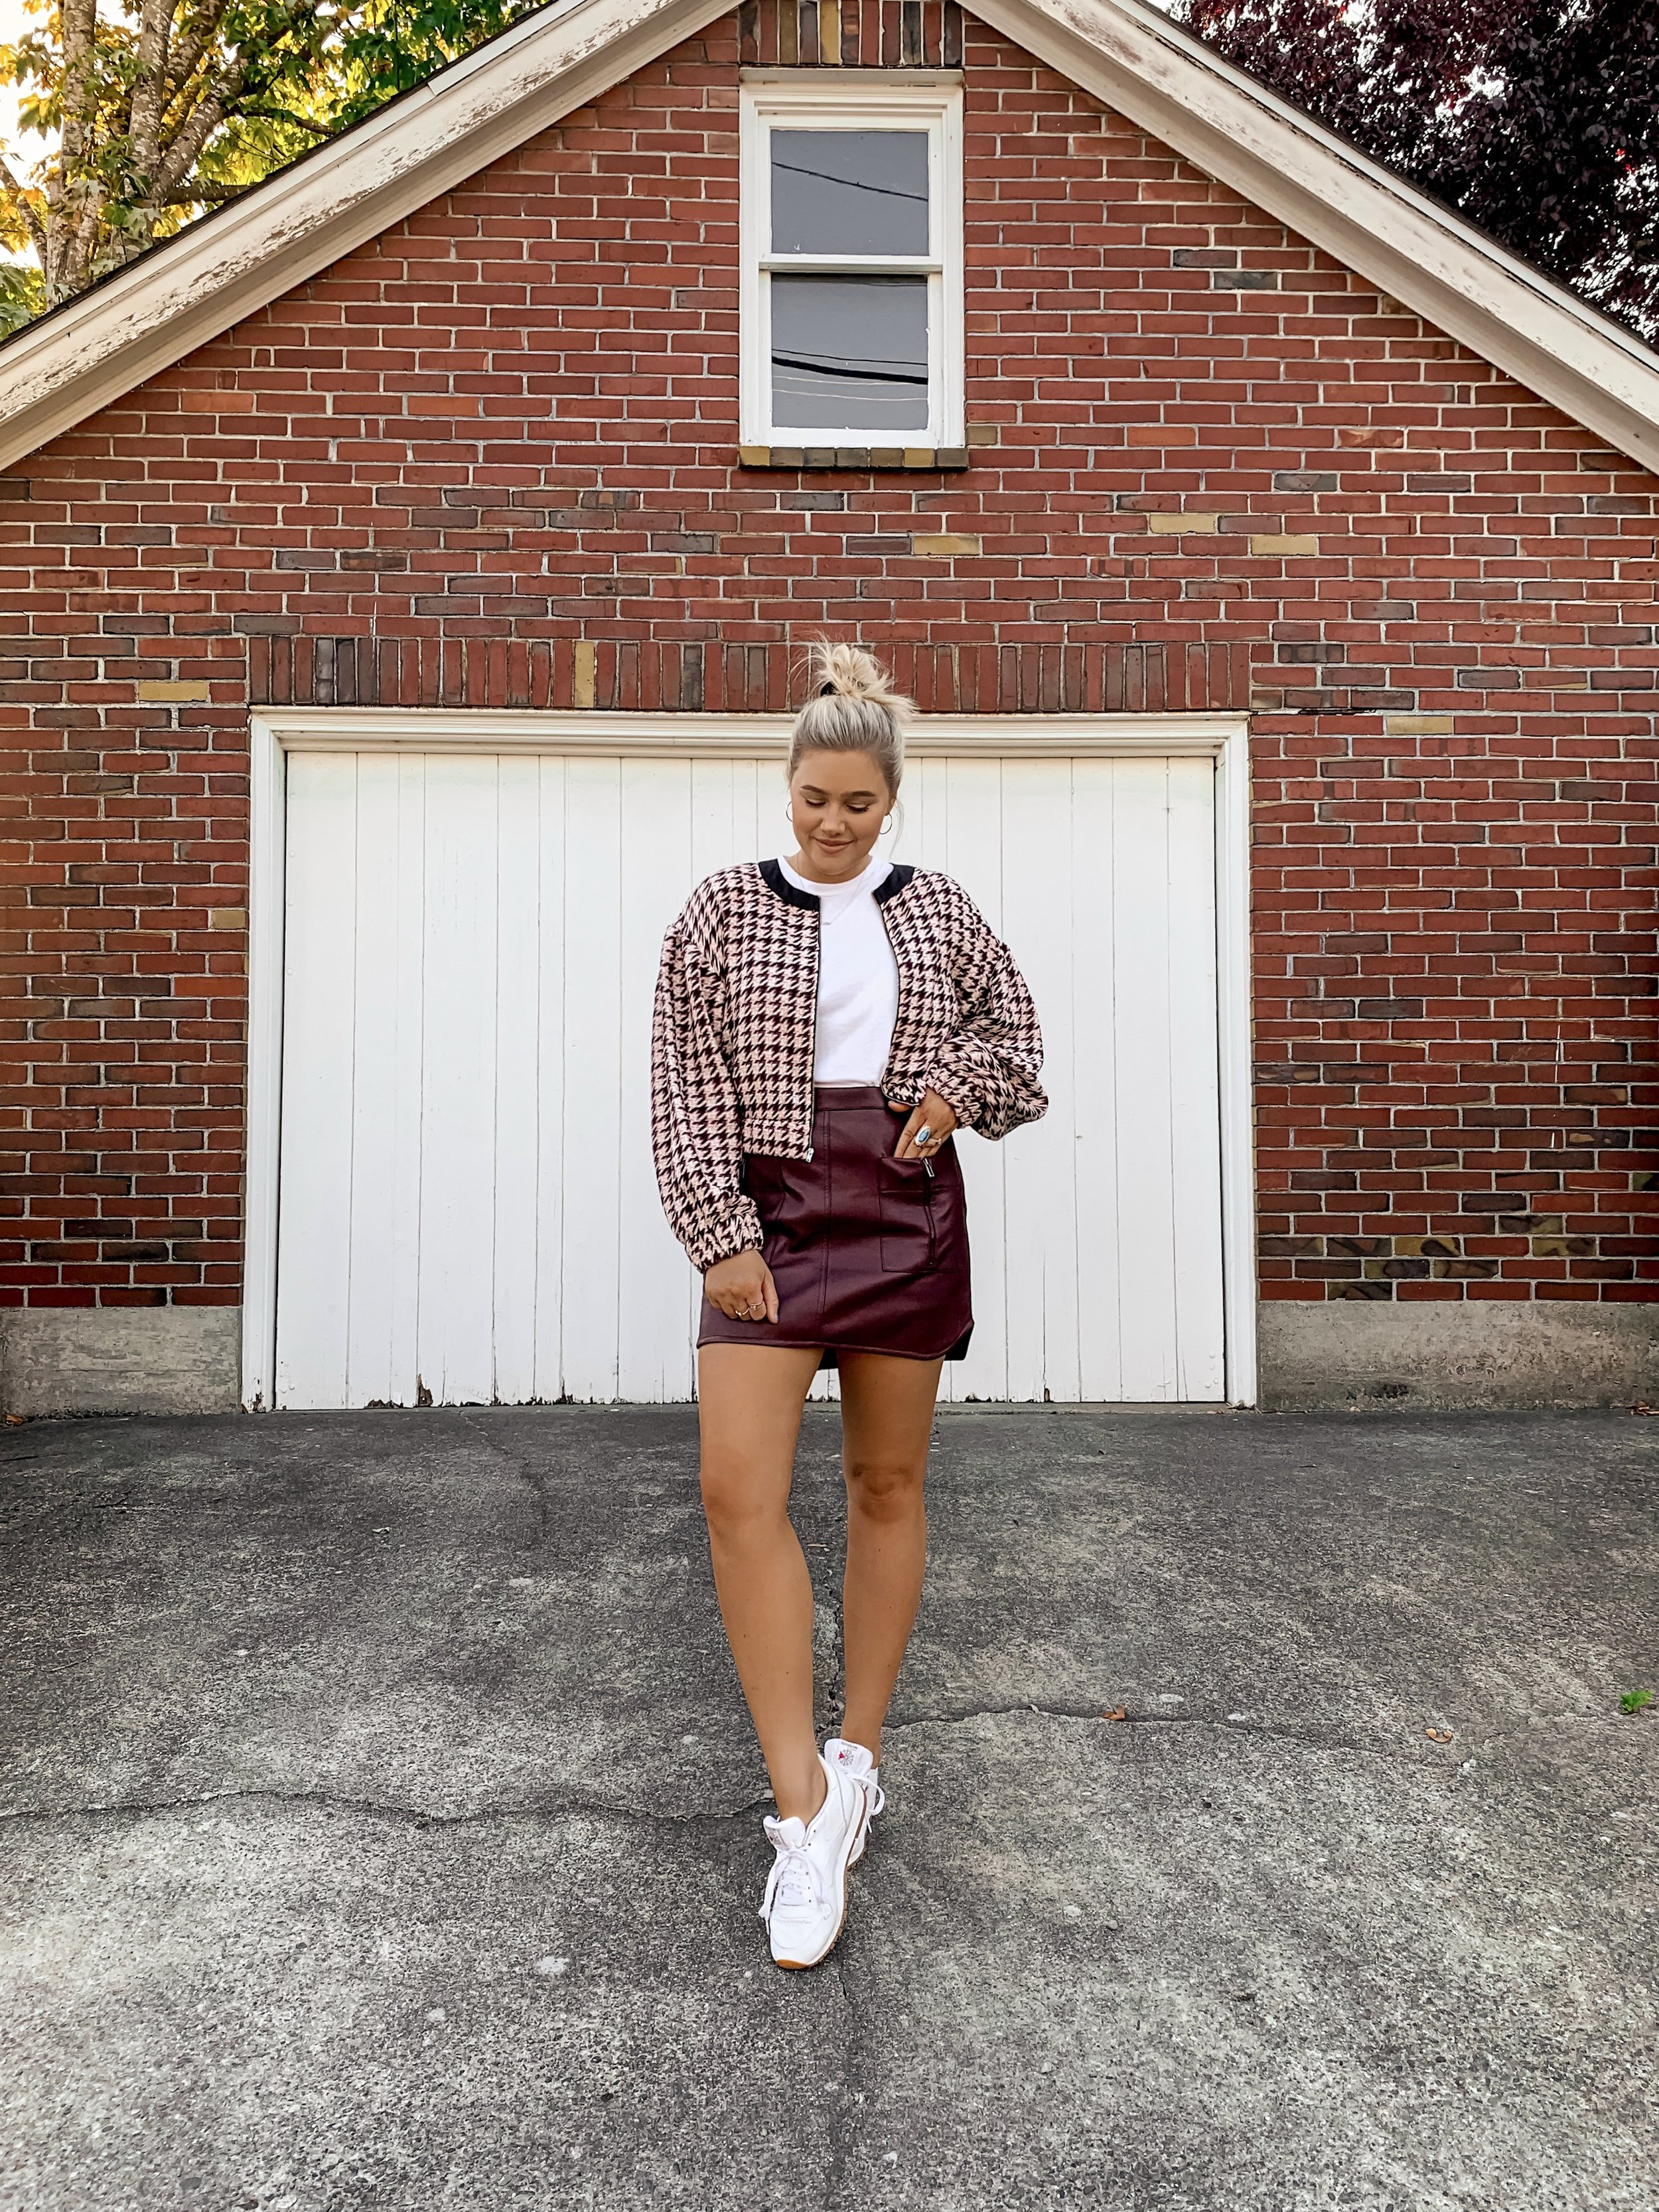 Bre Sheppard Bloomingdale's Fall Fashion - Tweed Jacket + Leather Skirt